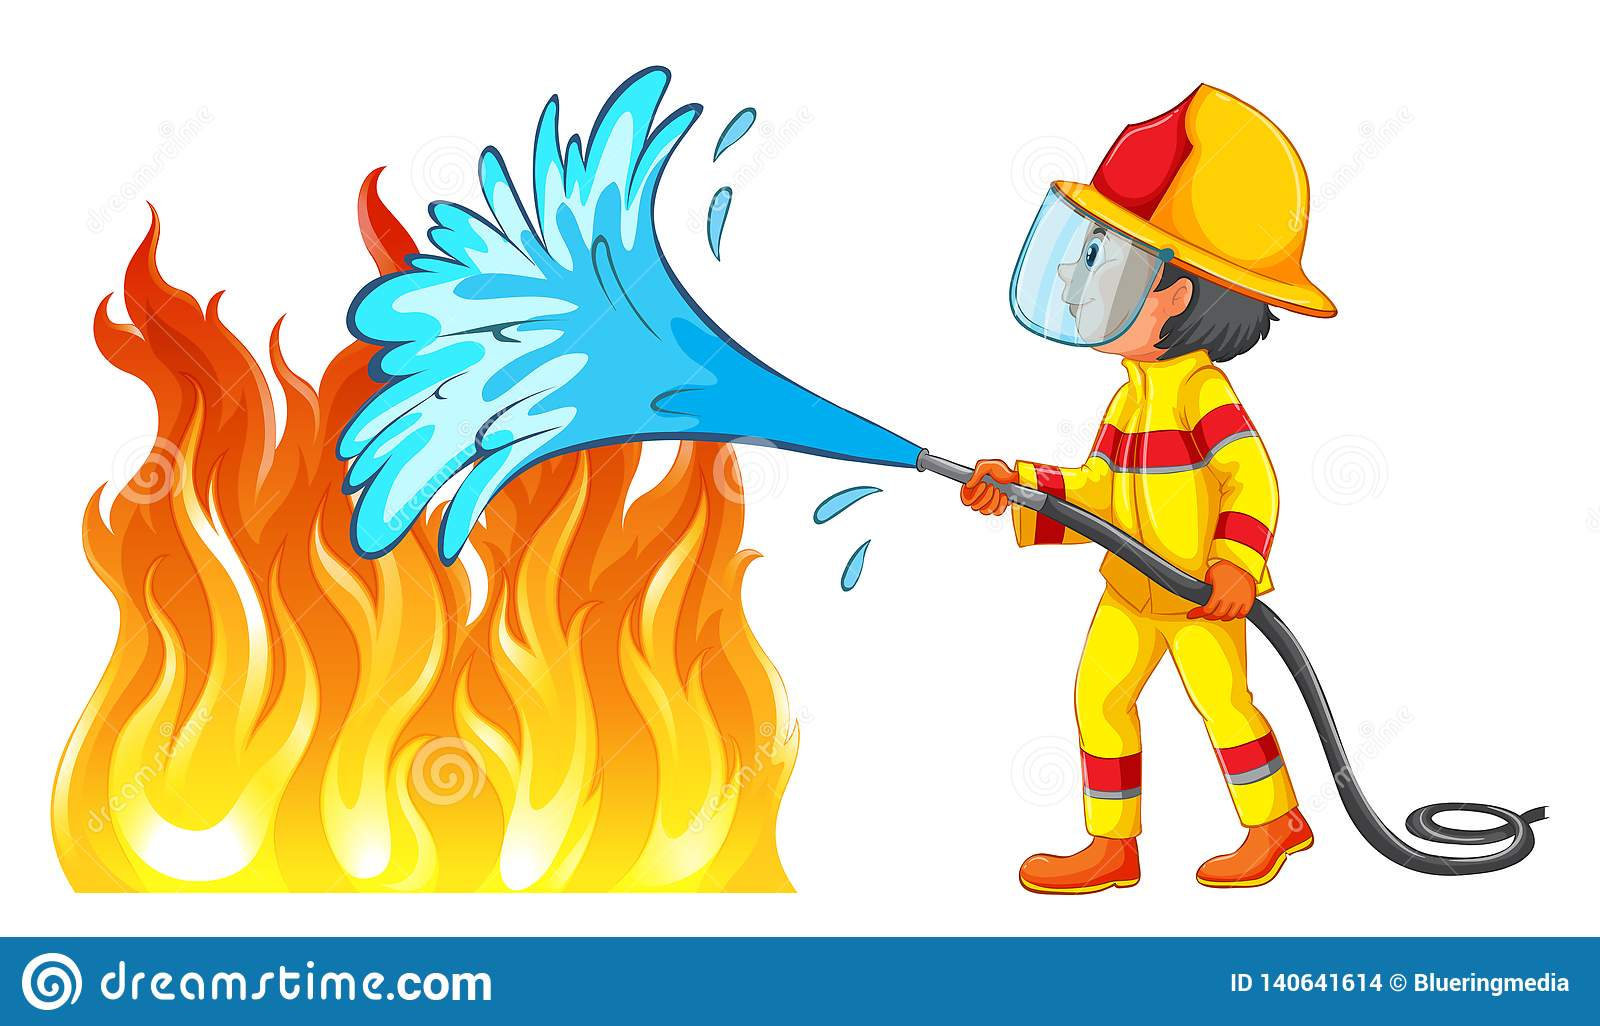 hight resolution of firefighter putting out a fire